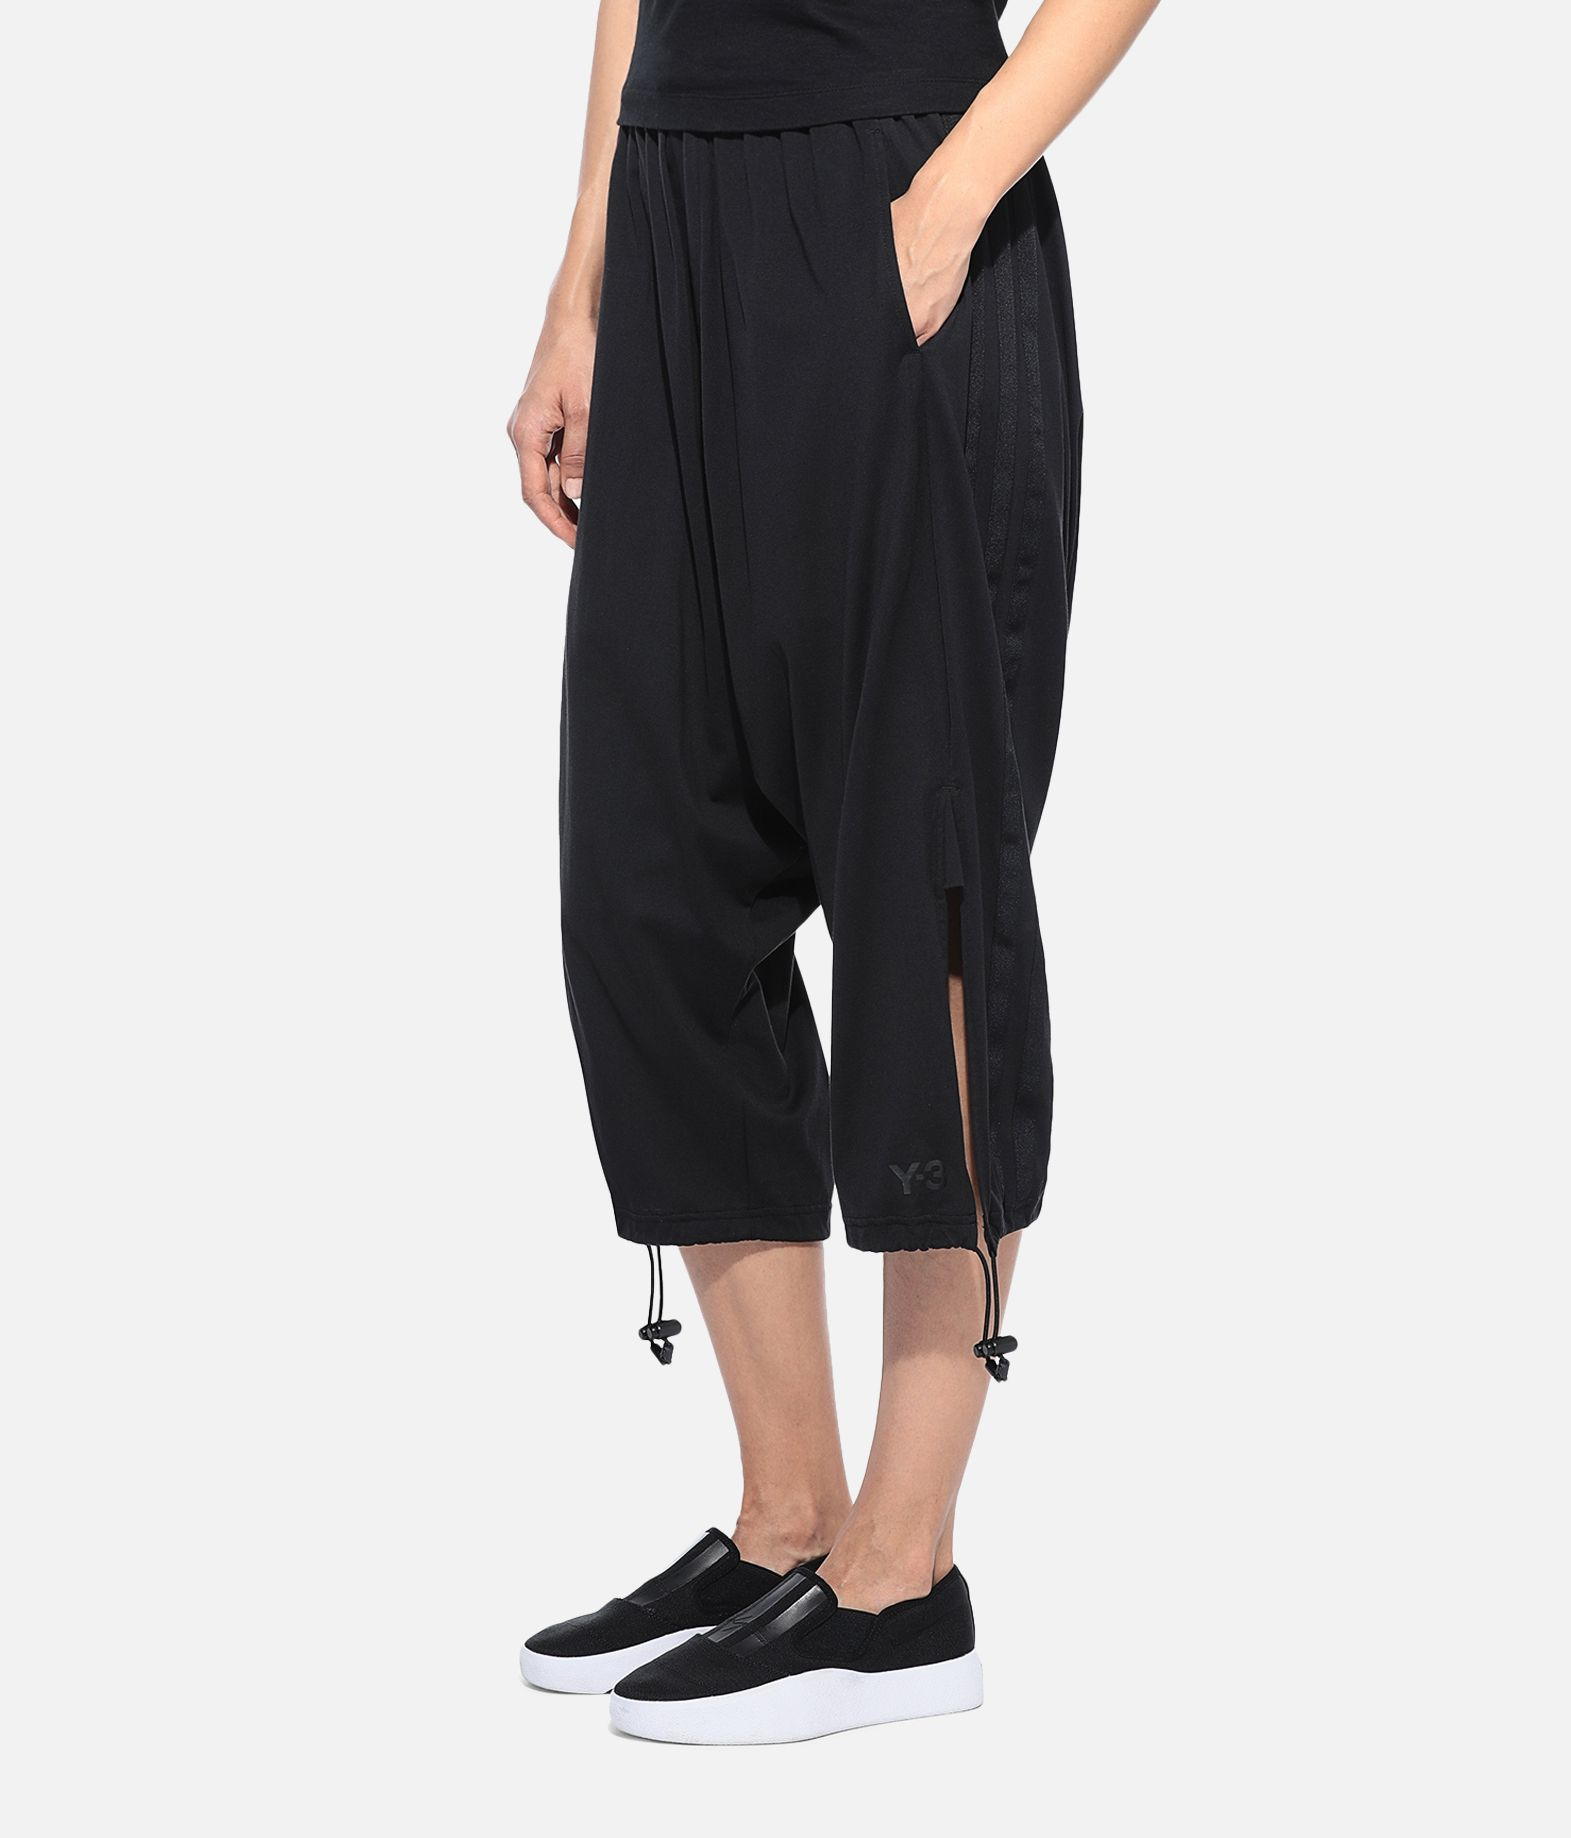 Y-3 Y-3 Drawstring 3/4 Pants  Cropped pant Woman e